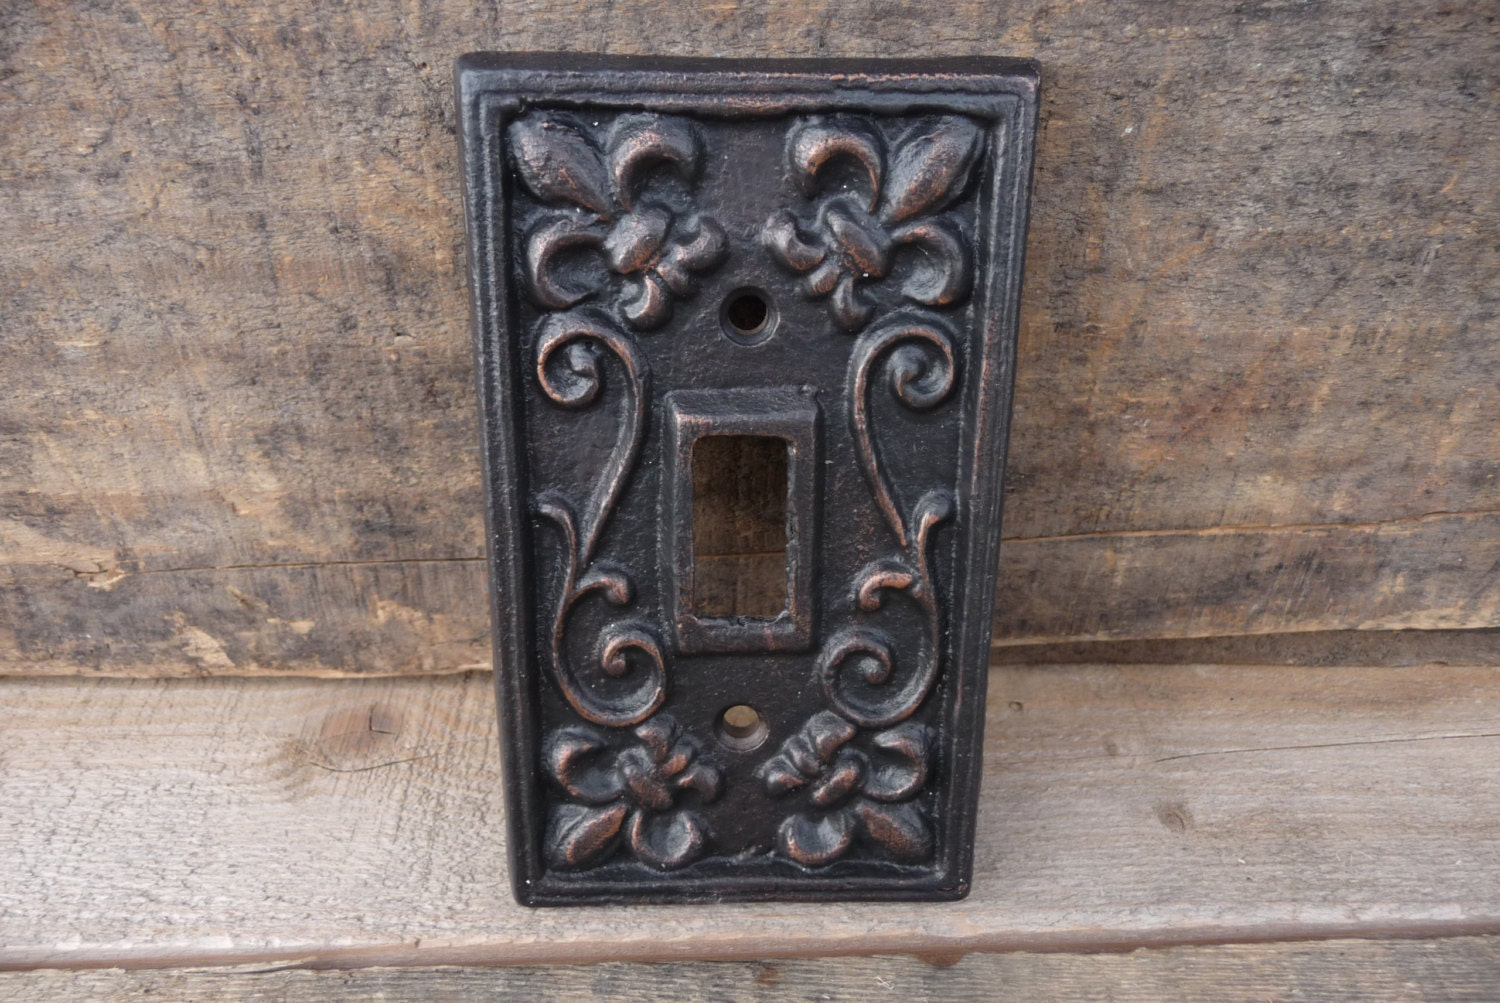 Vintage style cast iron metal switch plate switchplate cover - Wrought iron switch plate covers ...